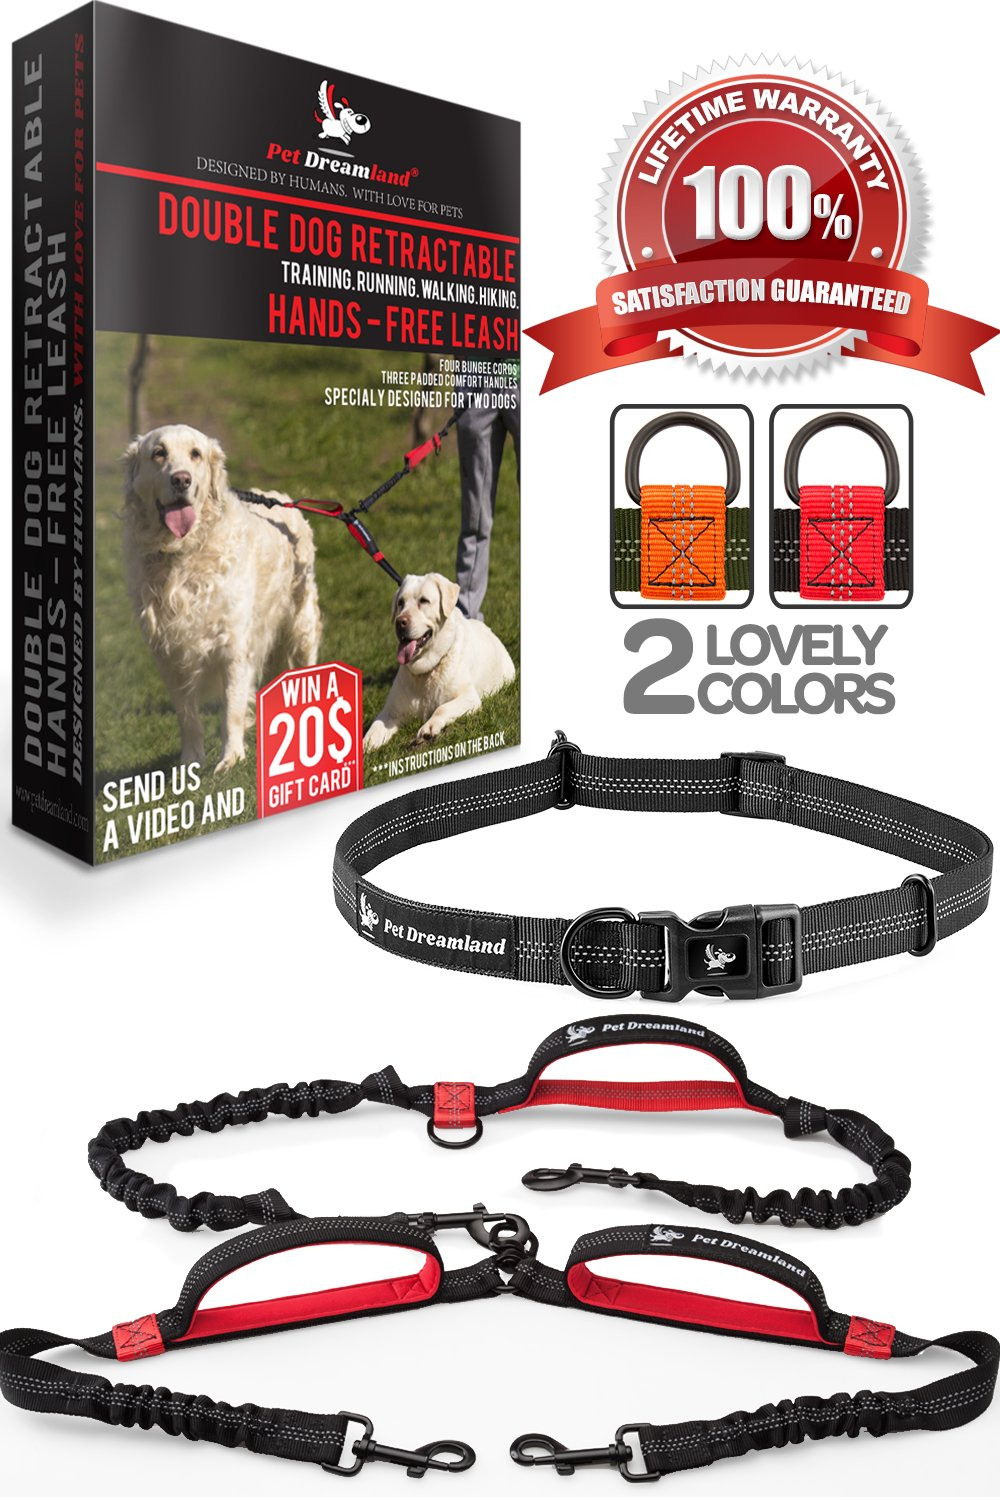 Hands Free Dog Leash for Running - Heavy Duty Extra Long Bungee Lead - Medium to Large Dogs (up to 150 lbs) - Waist Belt Leashes for Walking, Jogging, Hiking, Training (Two Dogs, Black & Red)